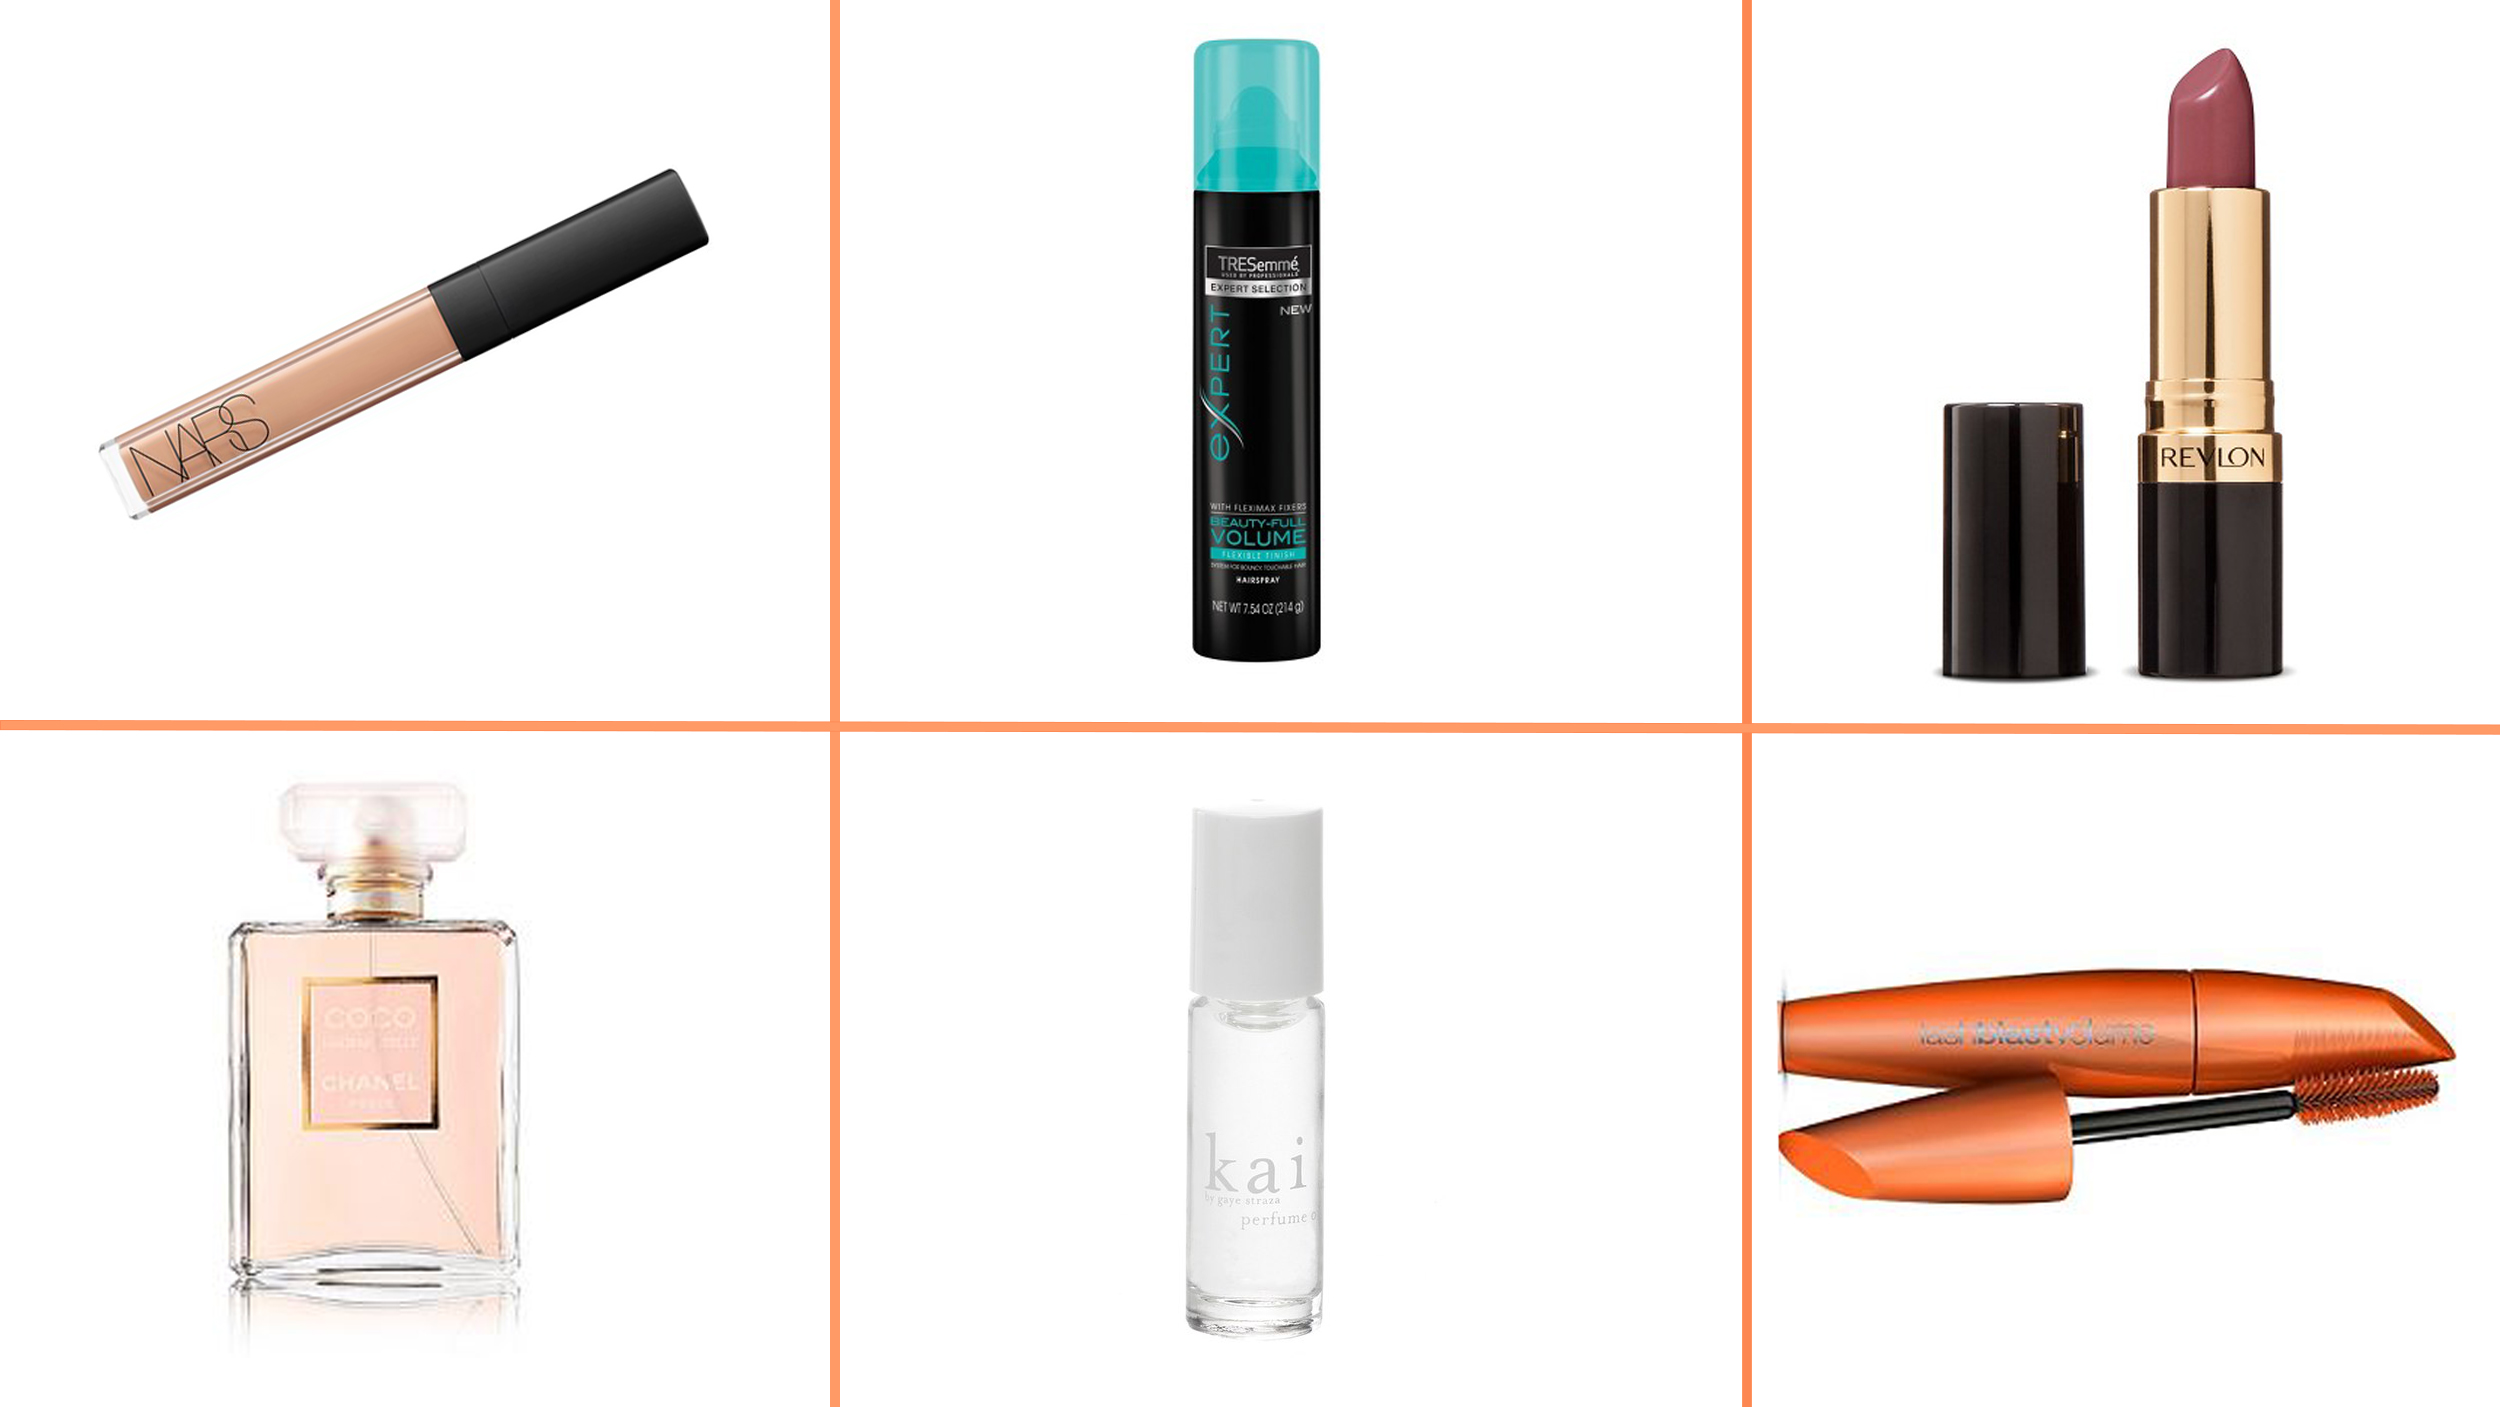 The best-selling mascara is sold once every 10 seconds